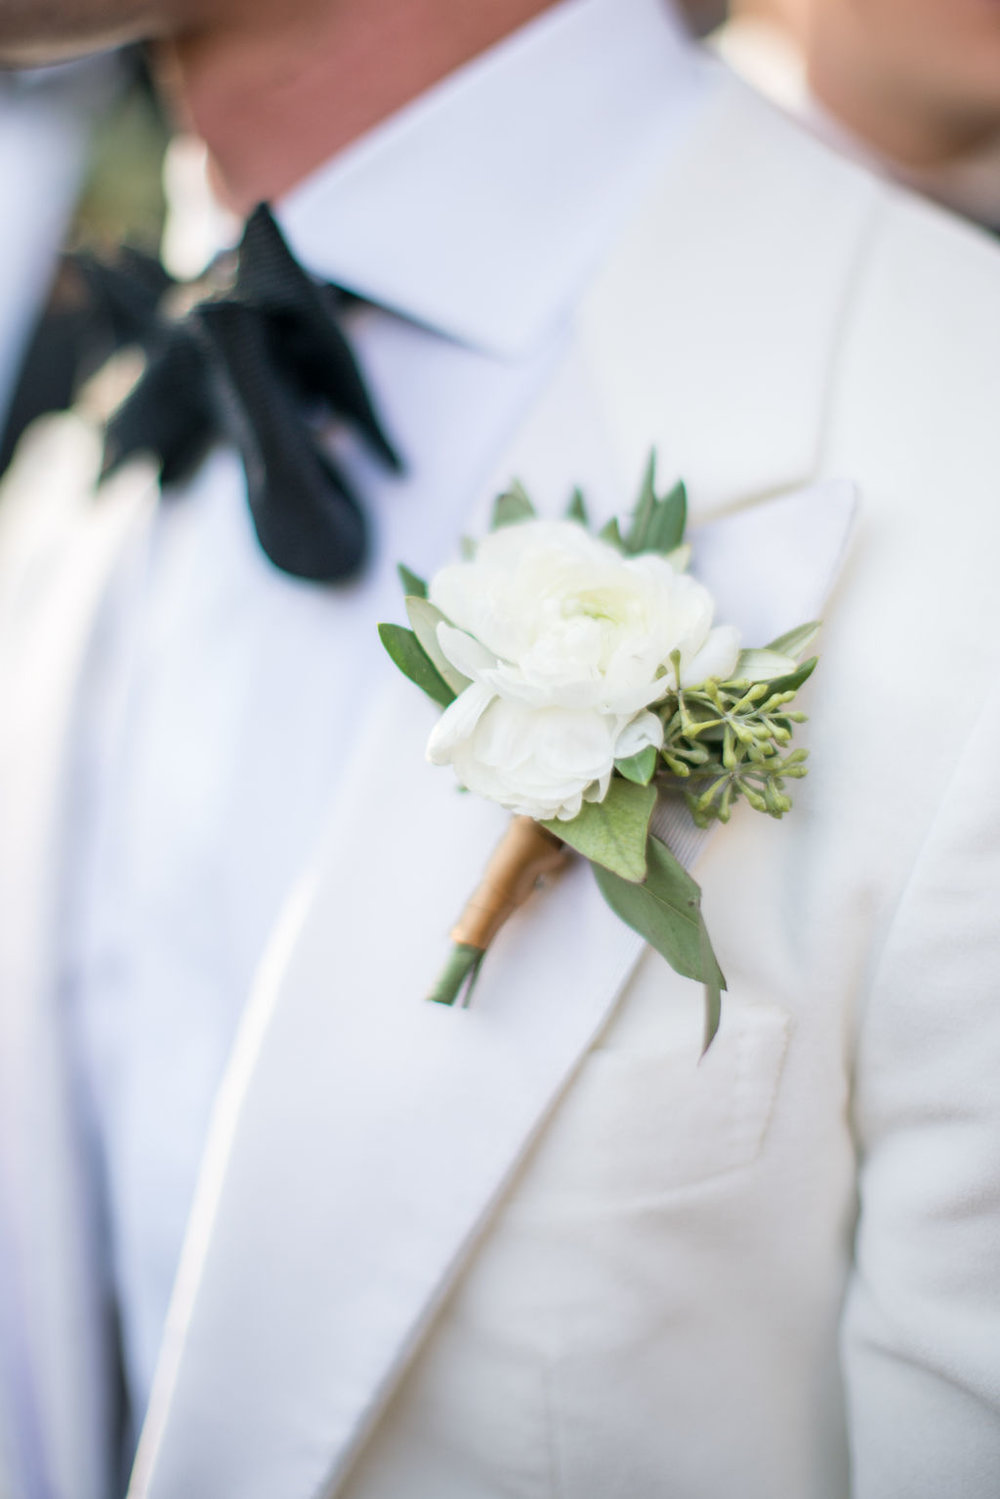 Wedding-GPS-Celin-wedding-boutonniere.jpg